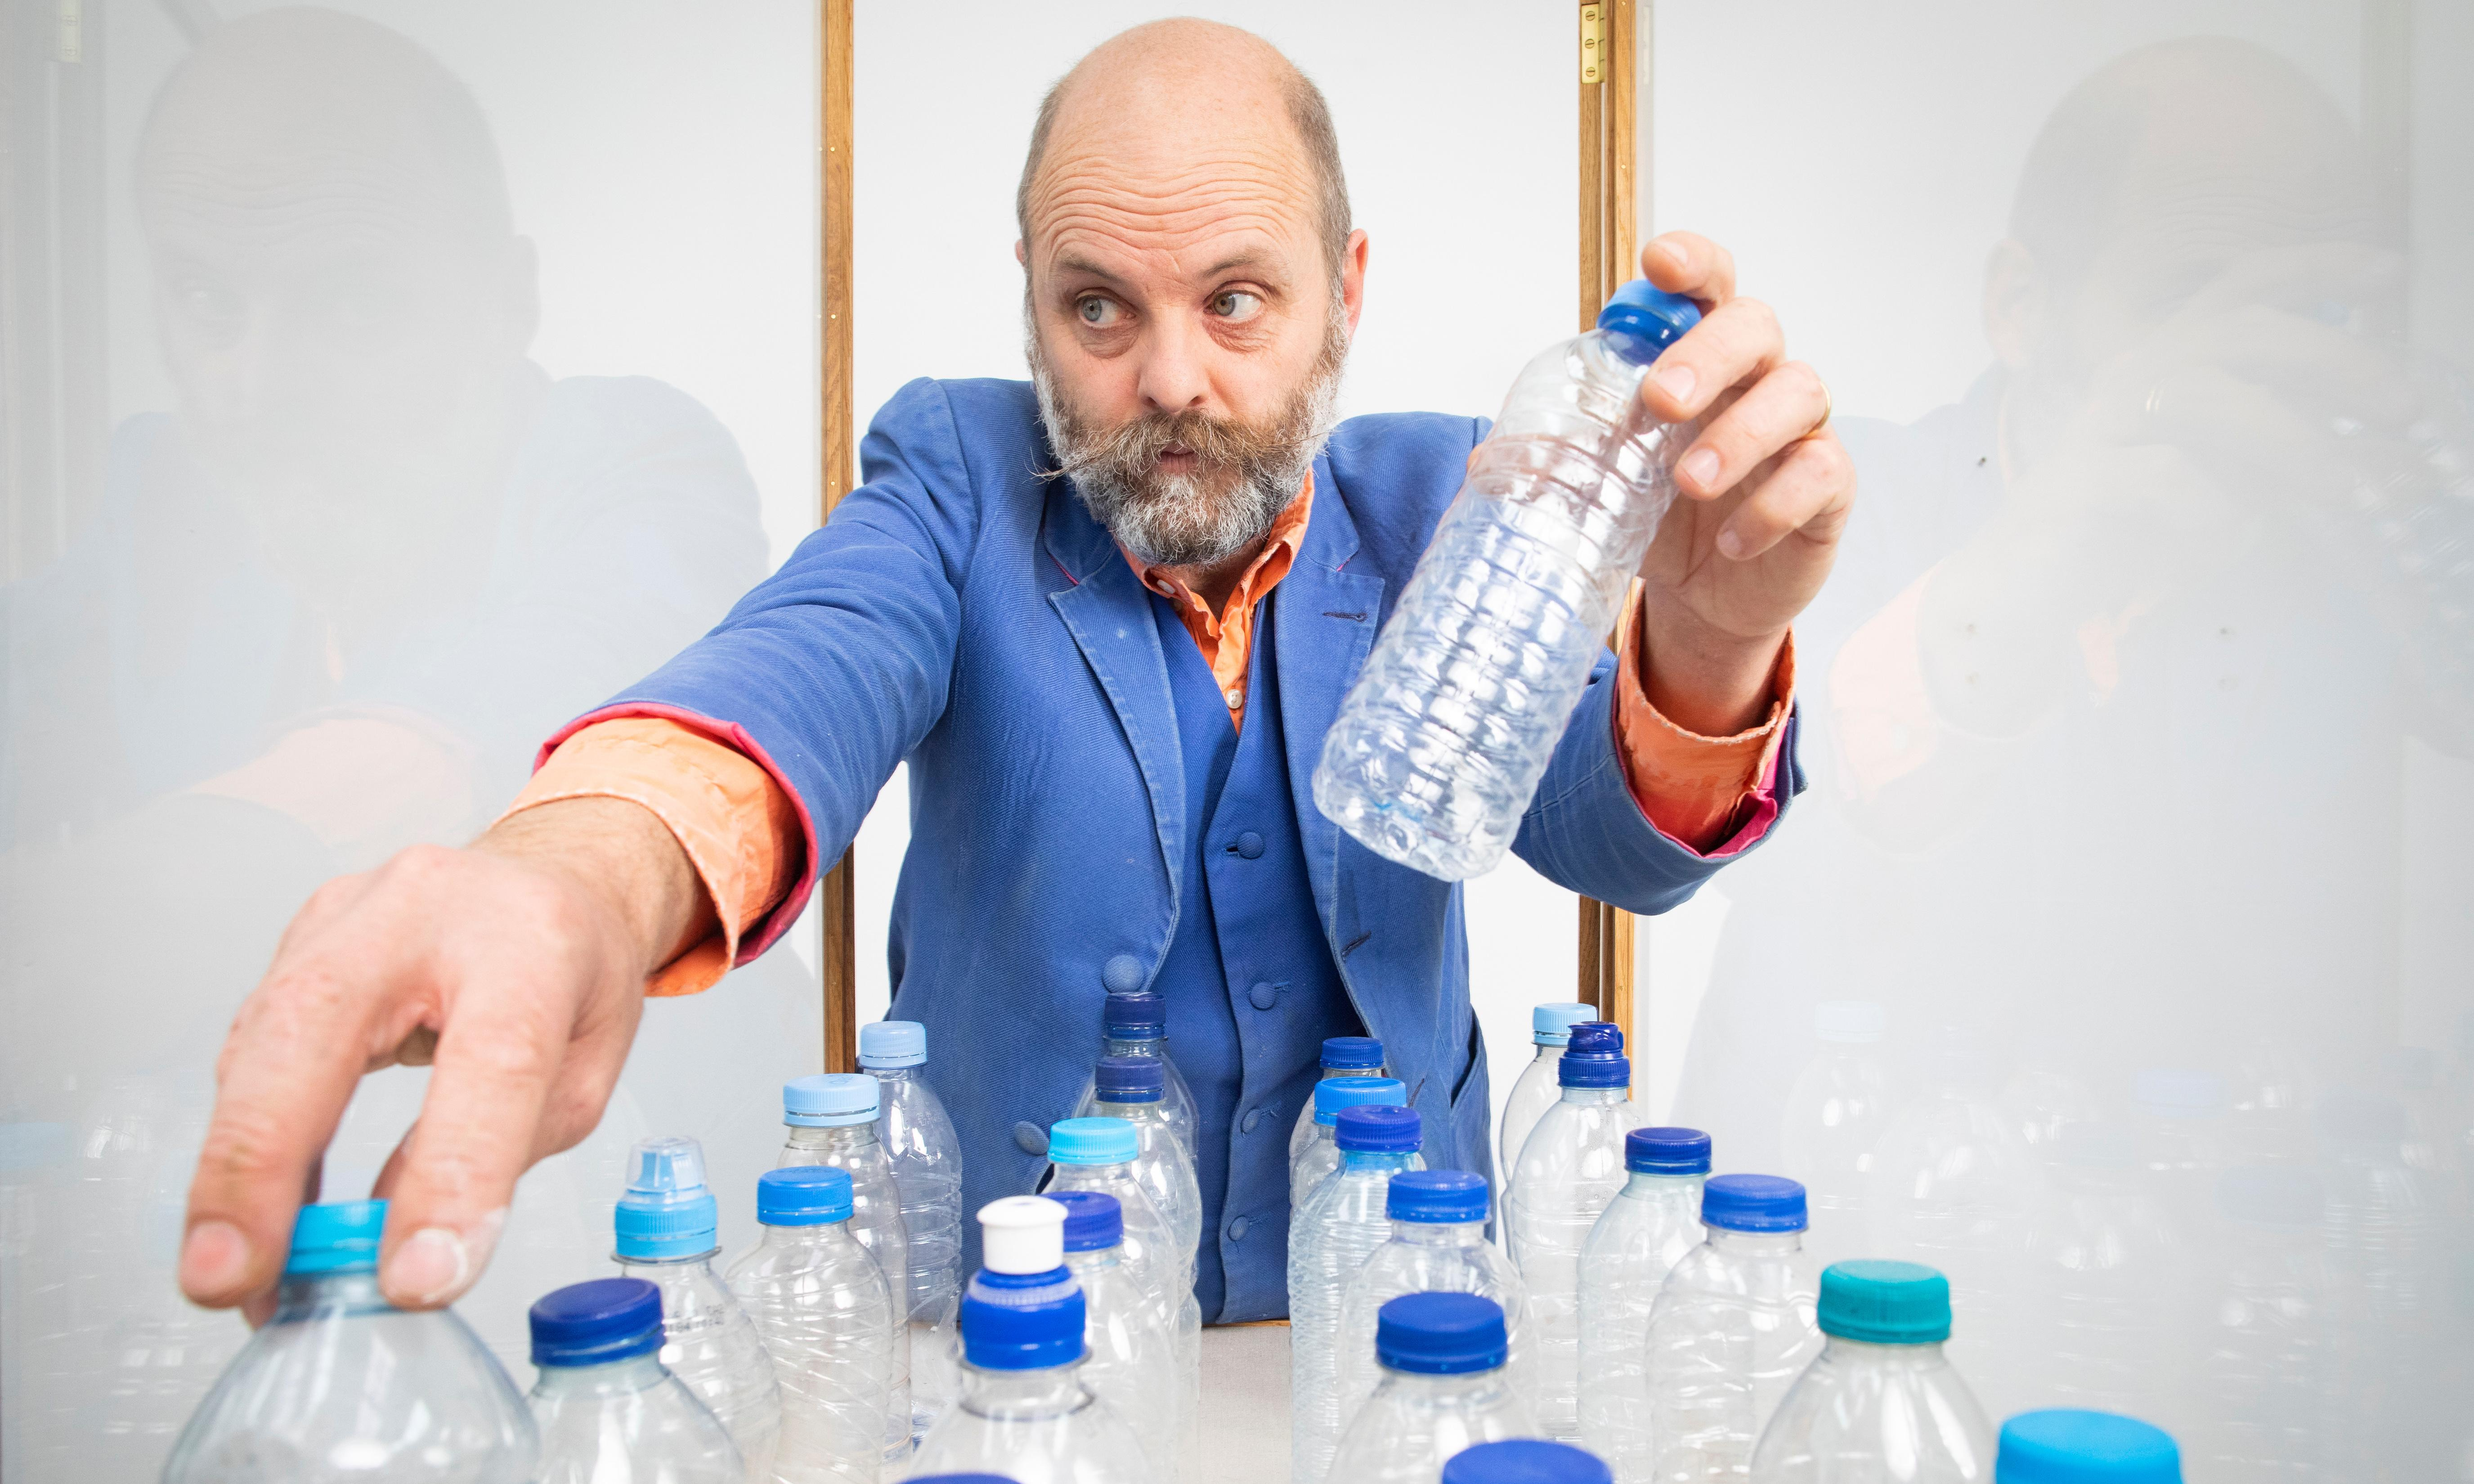 Gavin Turk: art's king of trash on plastic, protest, prison and canning his pee